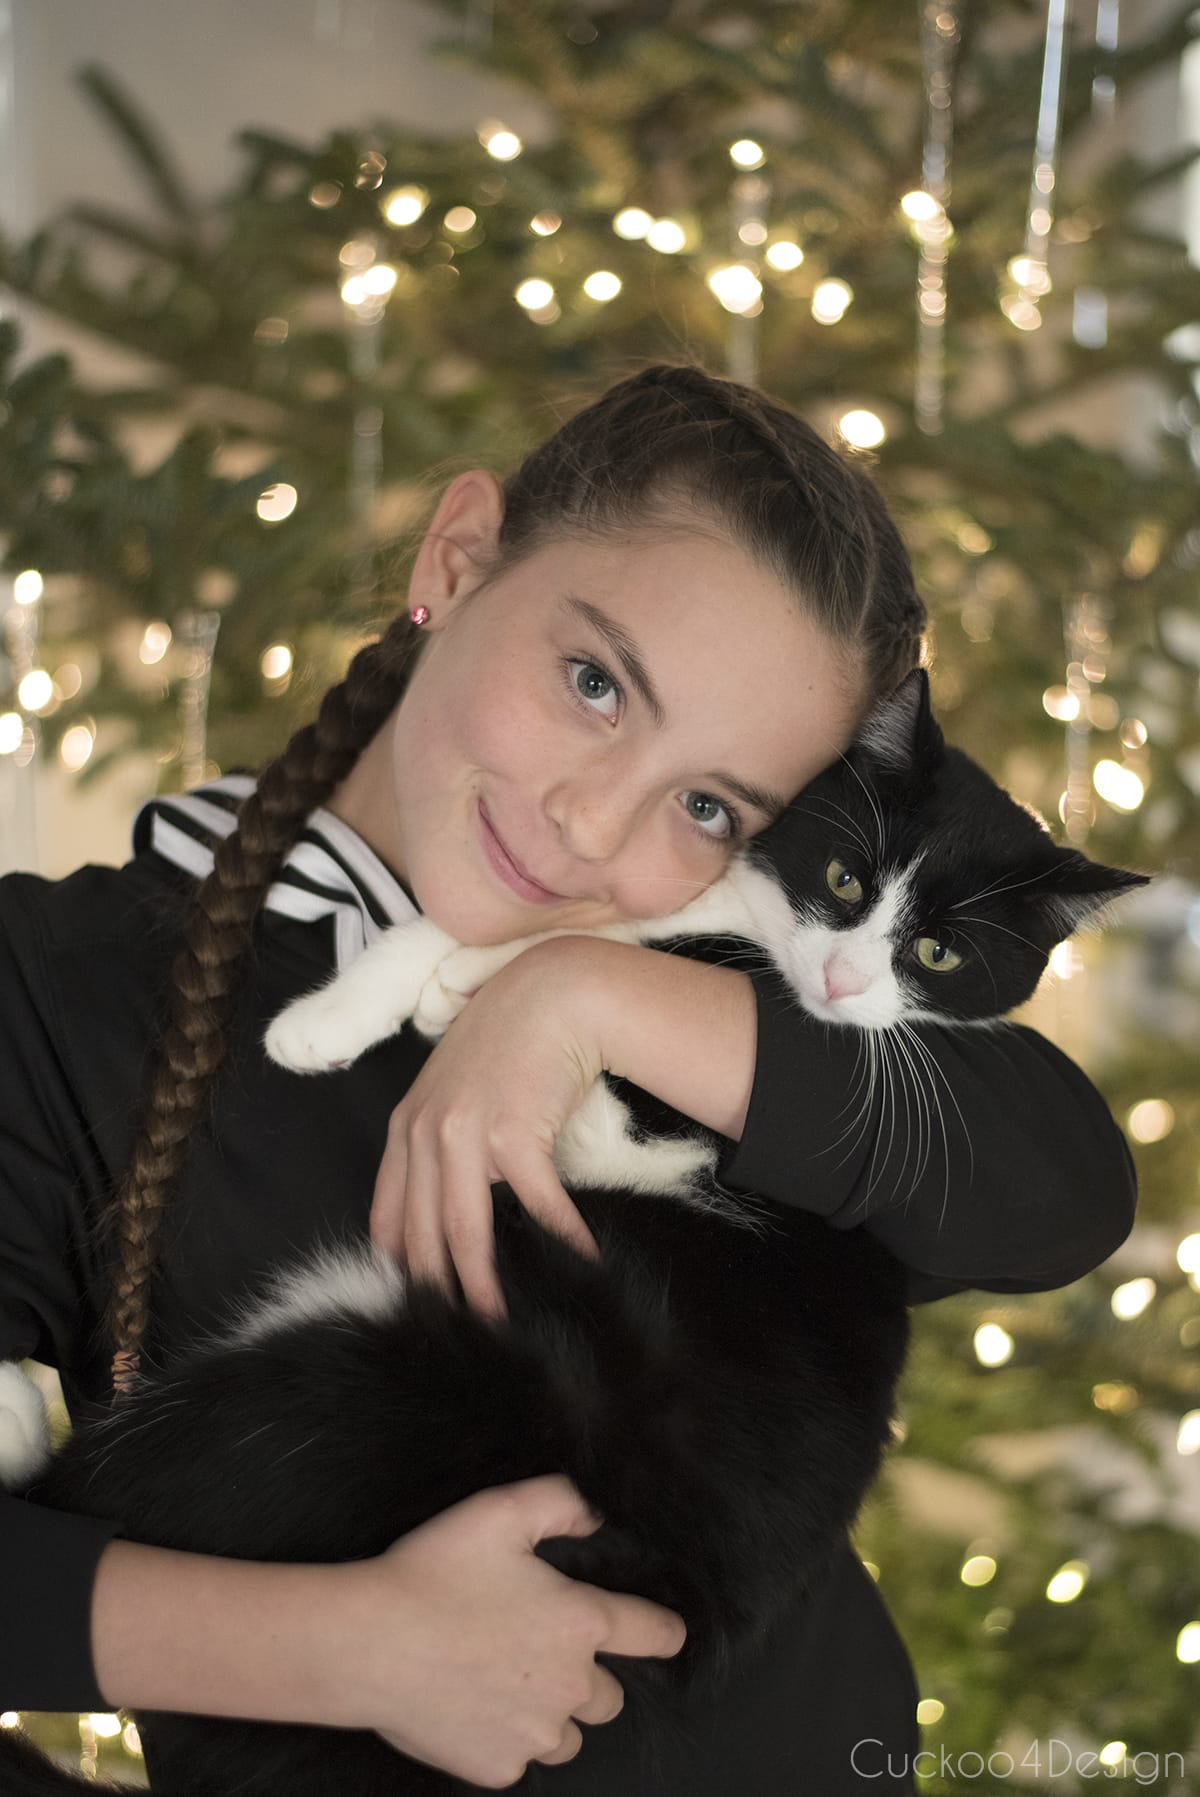 our daughter with our cat